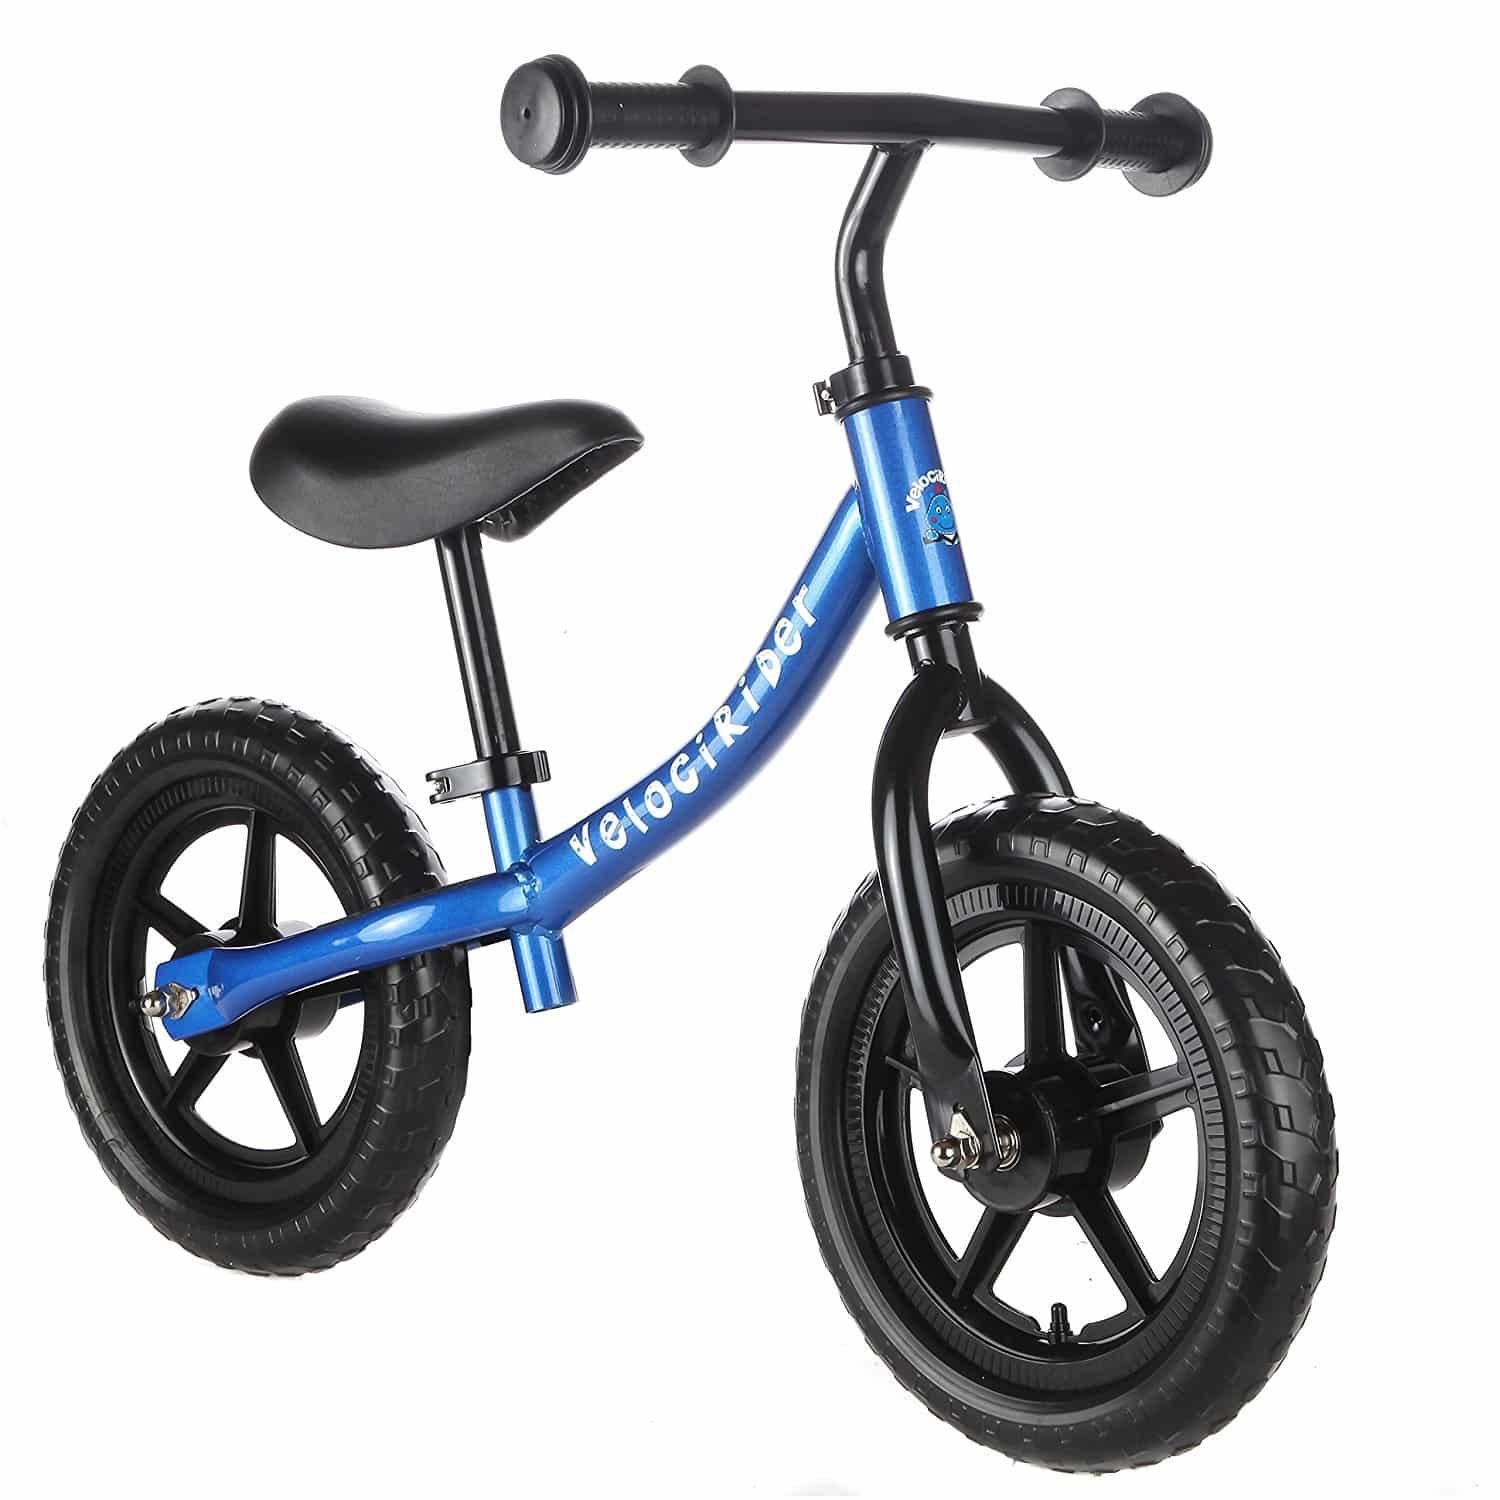 Best Balance Bikes For Kids Toddlers In 2020 Comparison